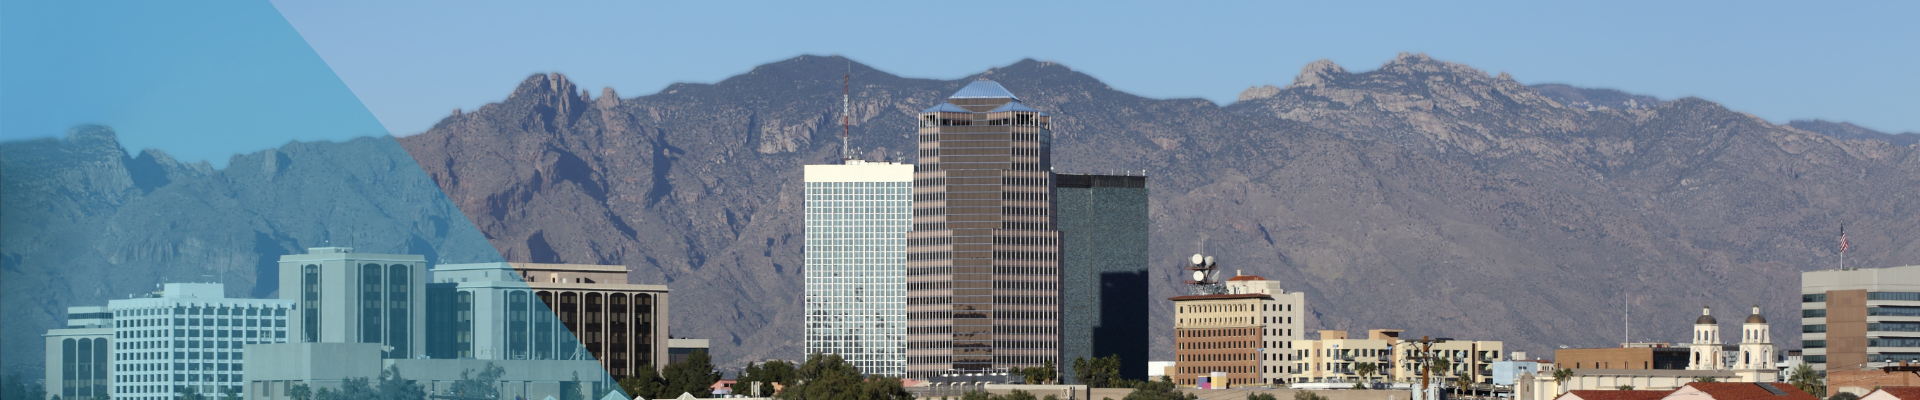 Tucson skyline with mountains behind